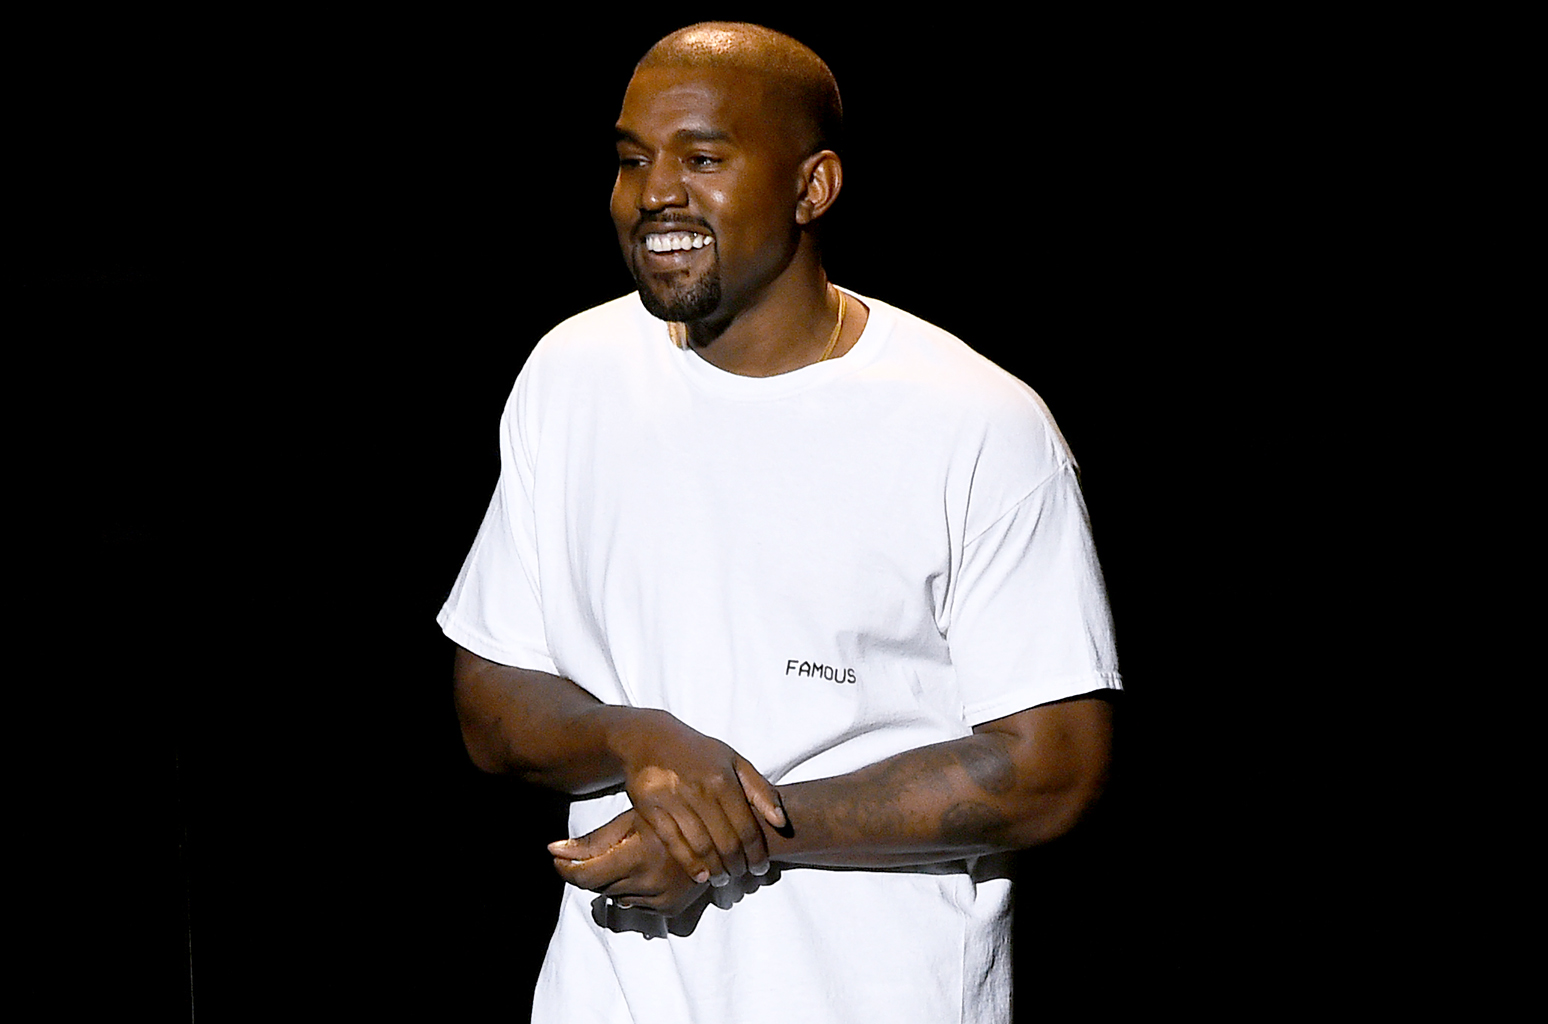 kanye-west-vmas-smile-2016-billboard-1548.jpg